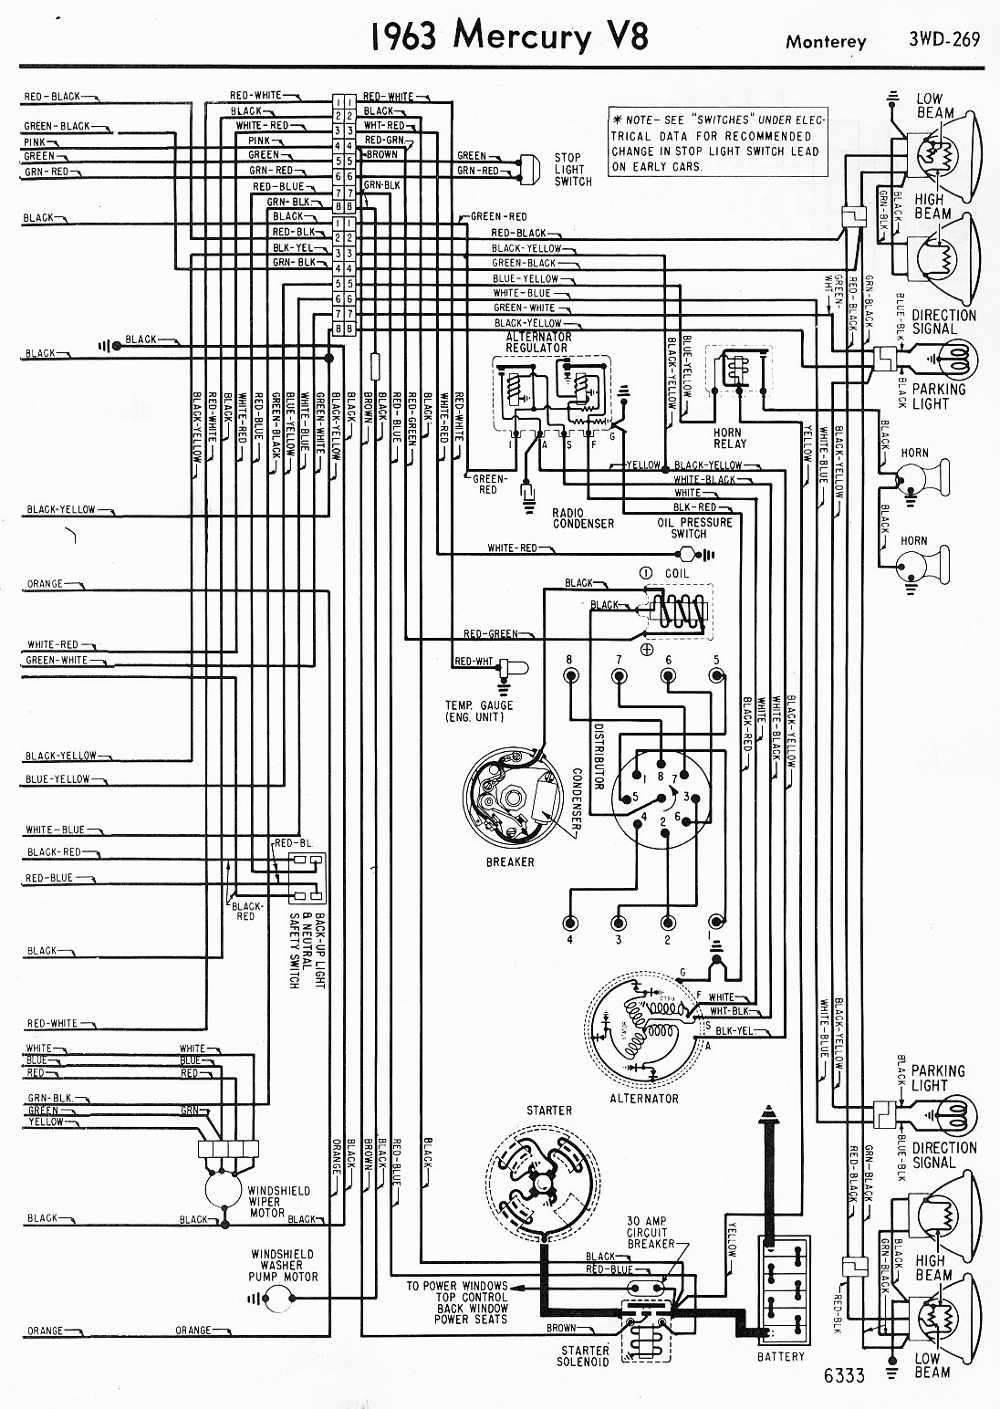 small resolution of wiring diagram 17 95 choose options compare 1953 desoto color wiring1956 mercury wiring diagram wiring diagram